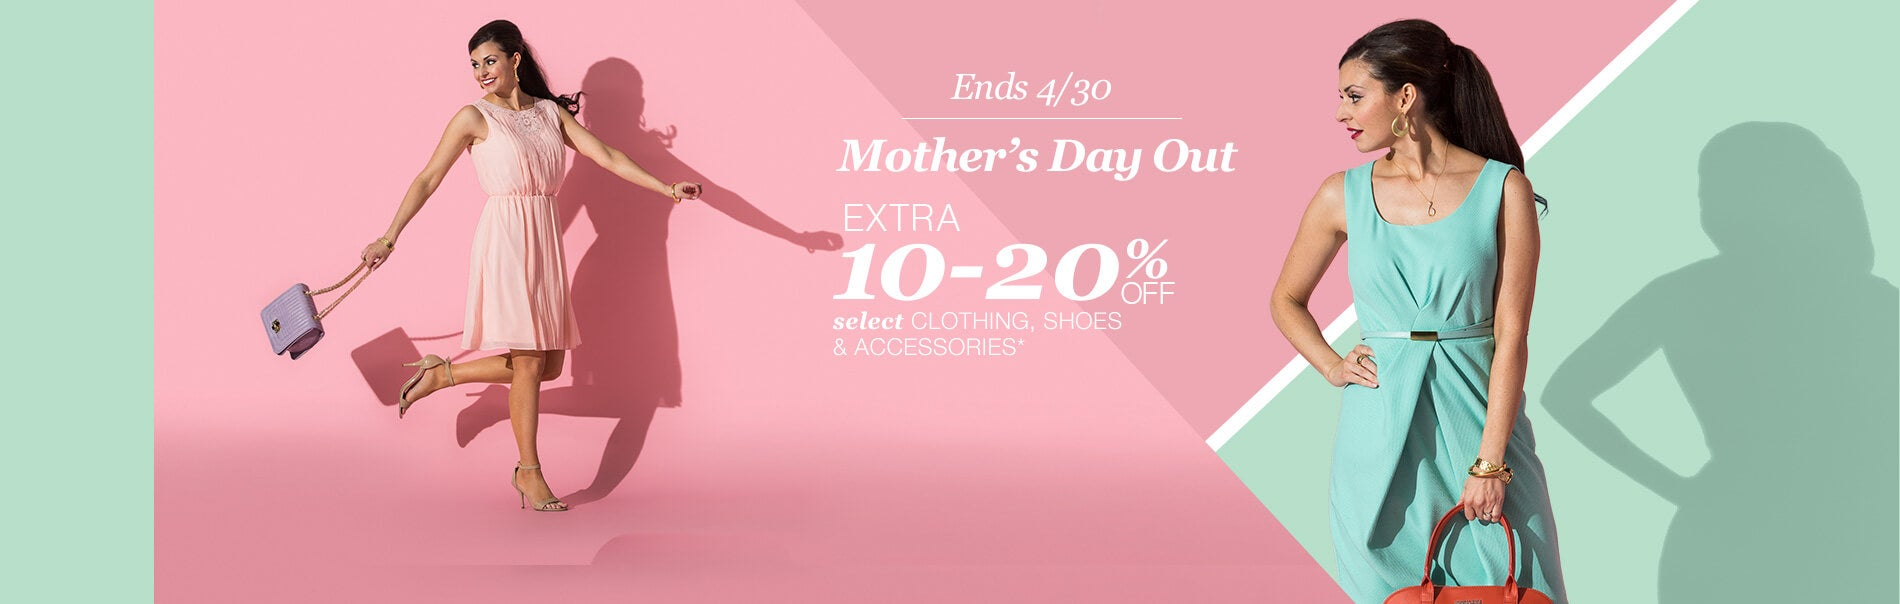 Ends 4/30. Extra 10-20% off Select Clothing, Shoes & Accessories*